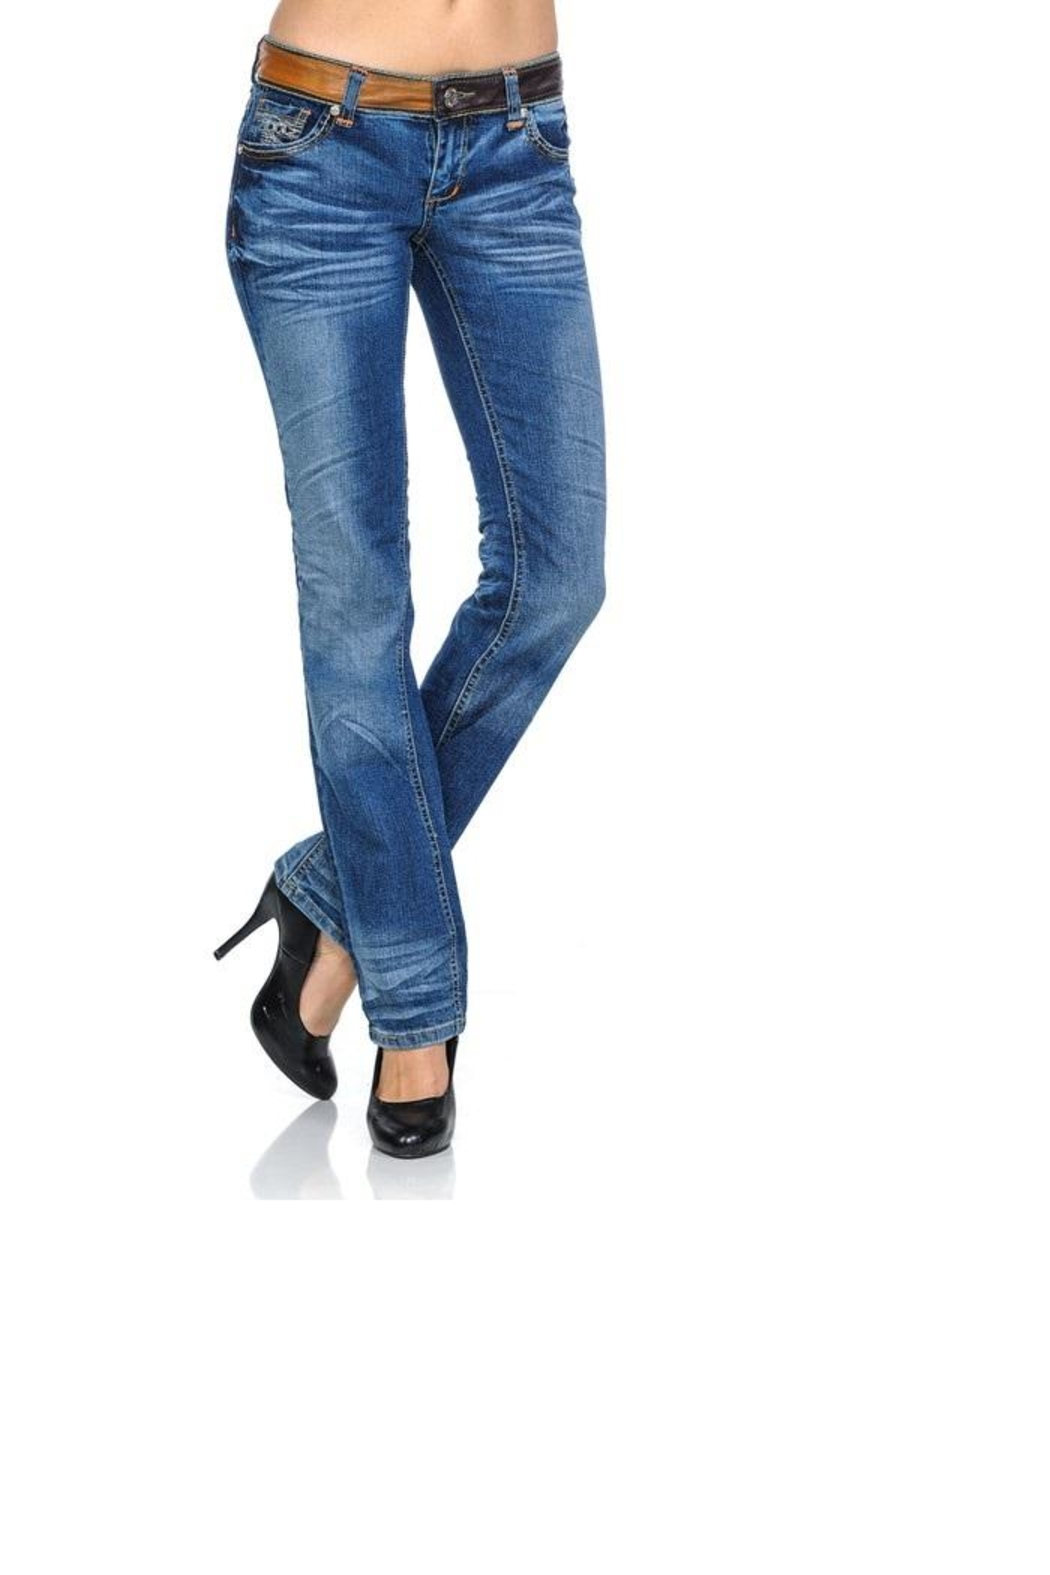 a6b8d99fd77 virgin only Slim Stretch Jeans from Georgia by Posh Clothing ...